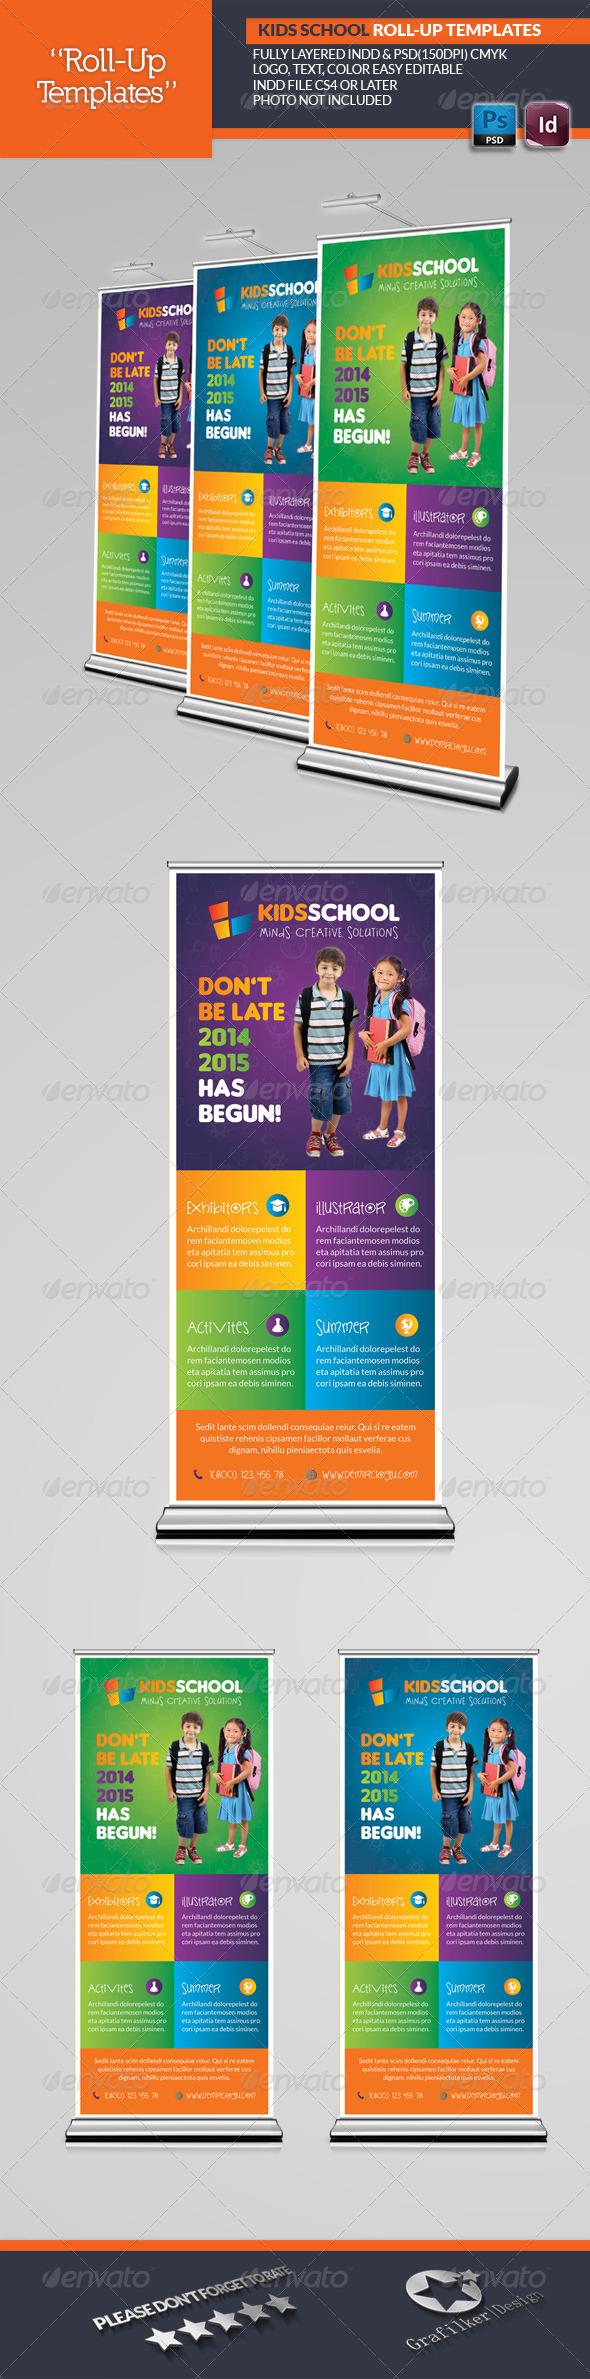 Kids School Roll-Up Templates - Signage Print Templates